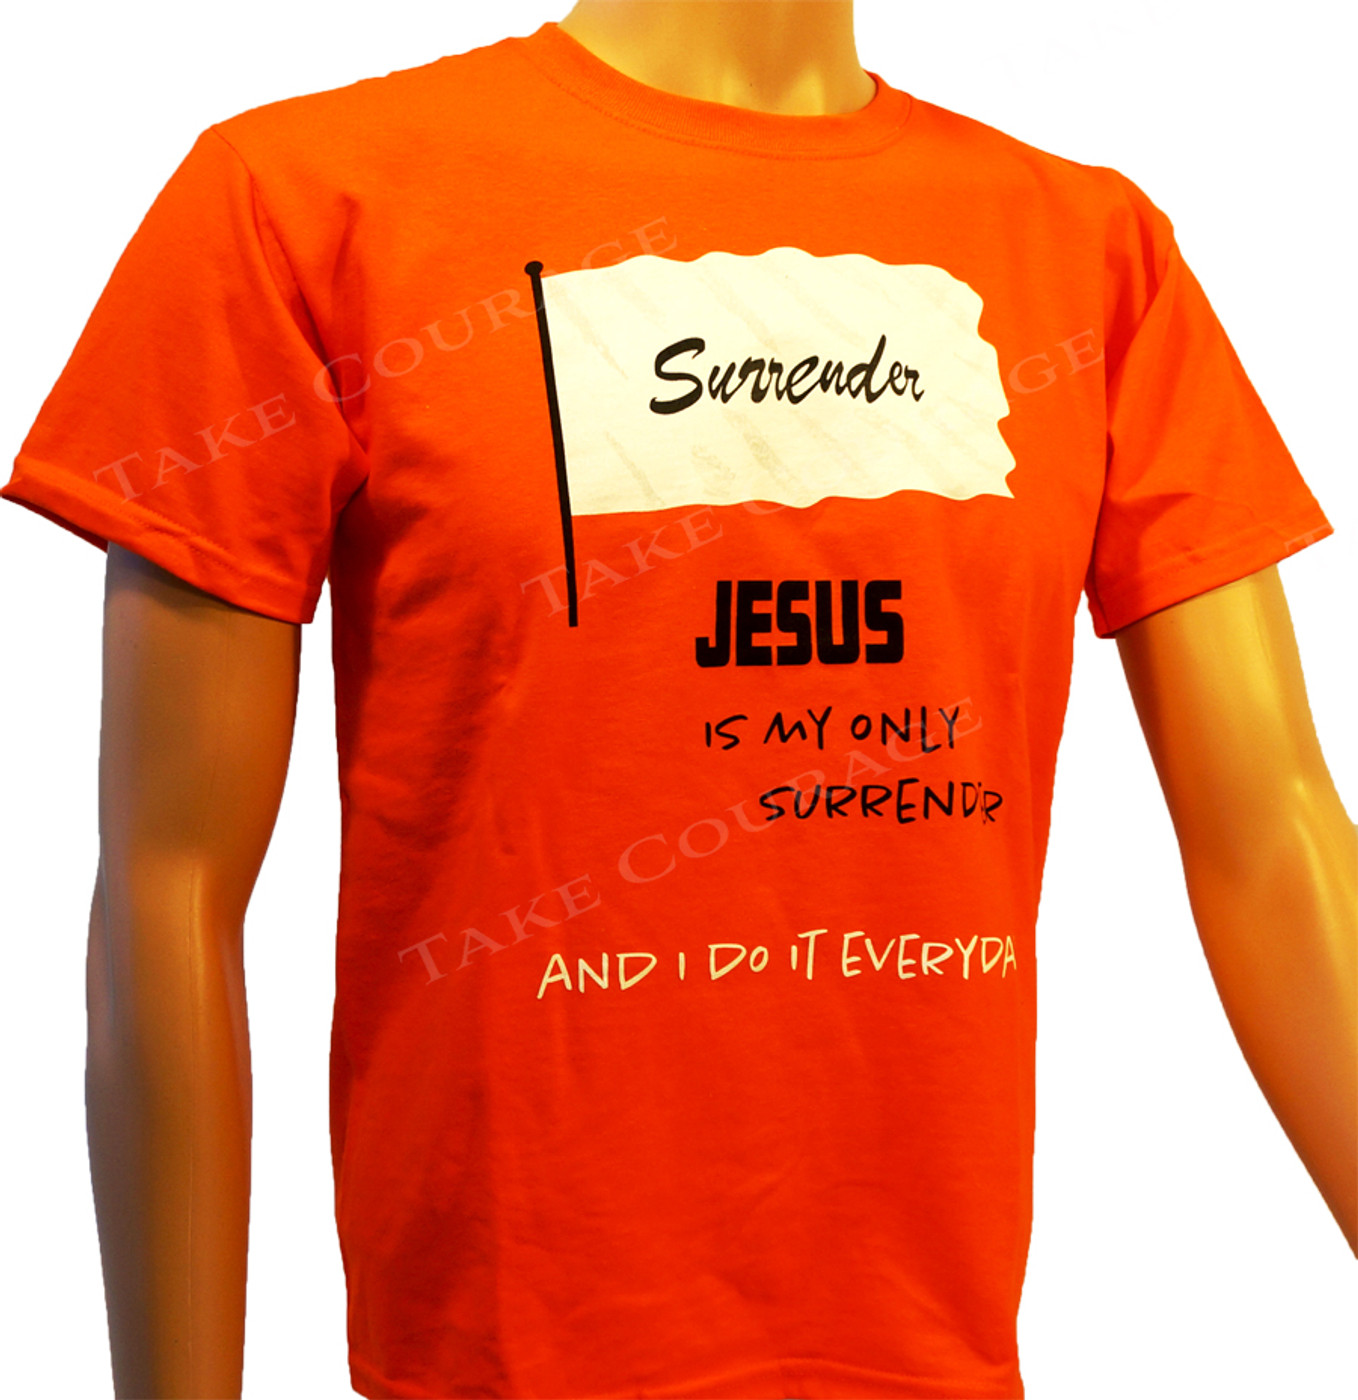 Surrender - Christian Shirt  - Orange